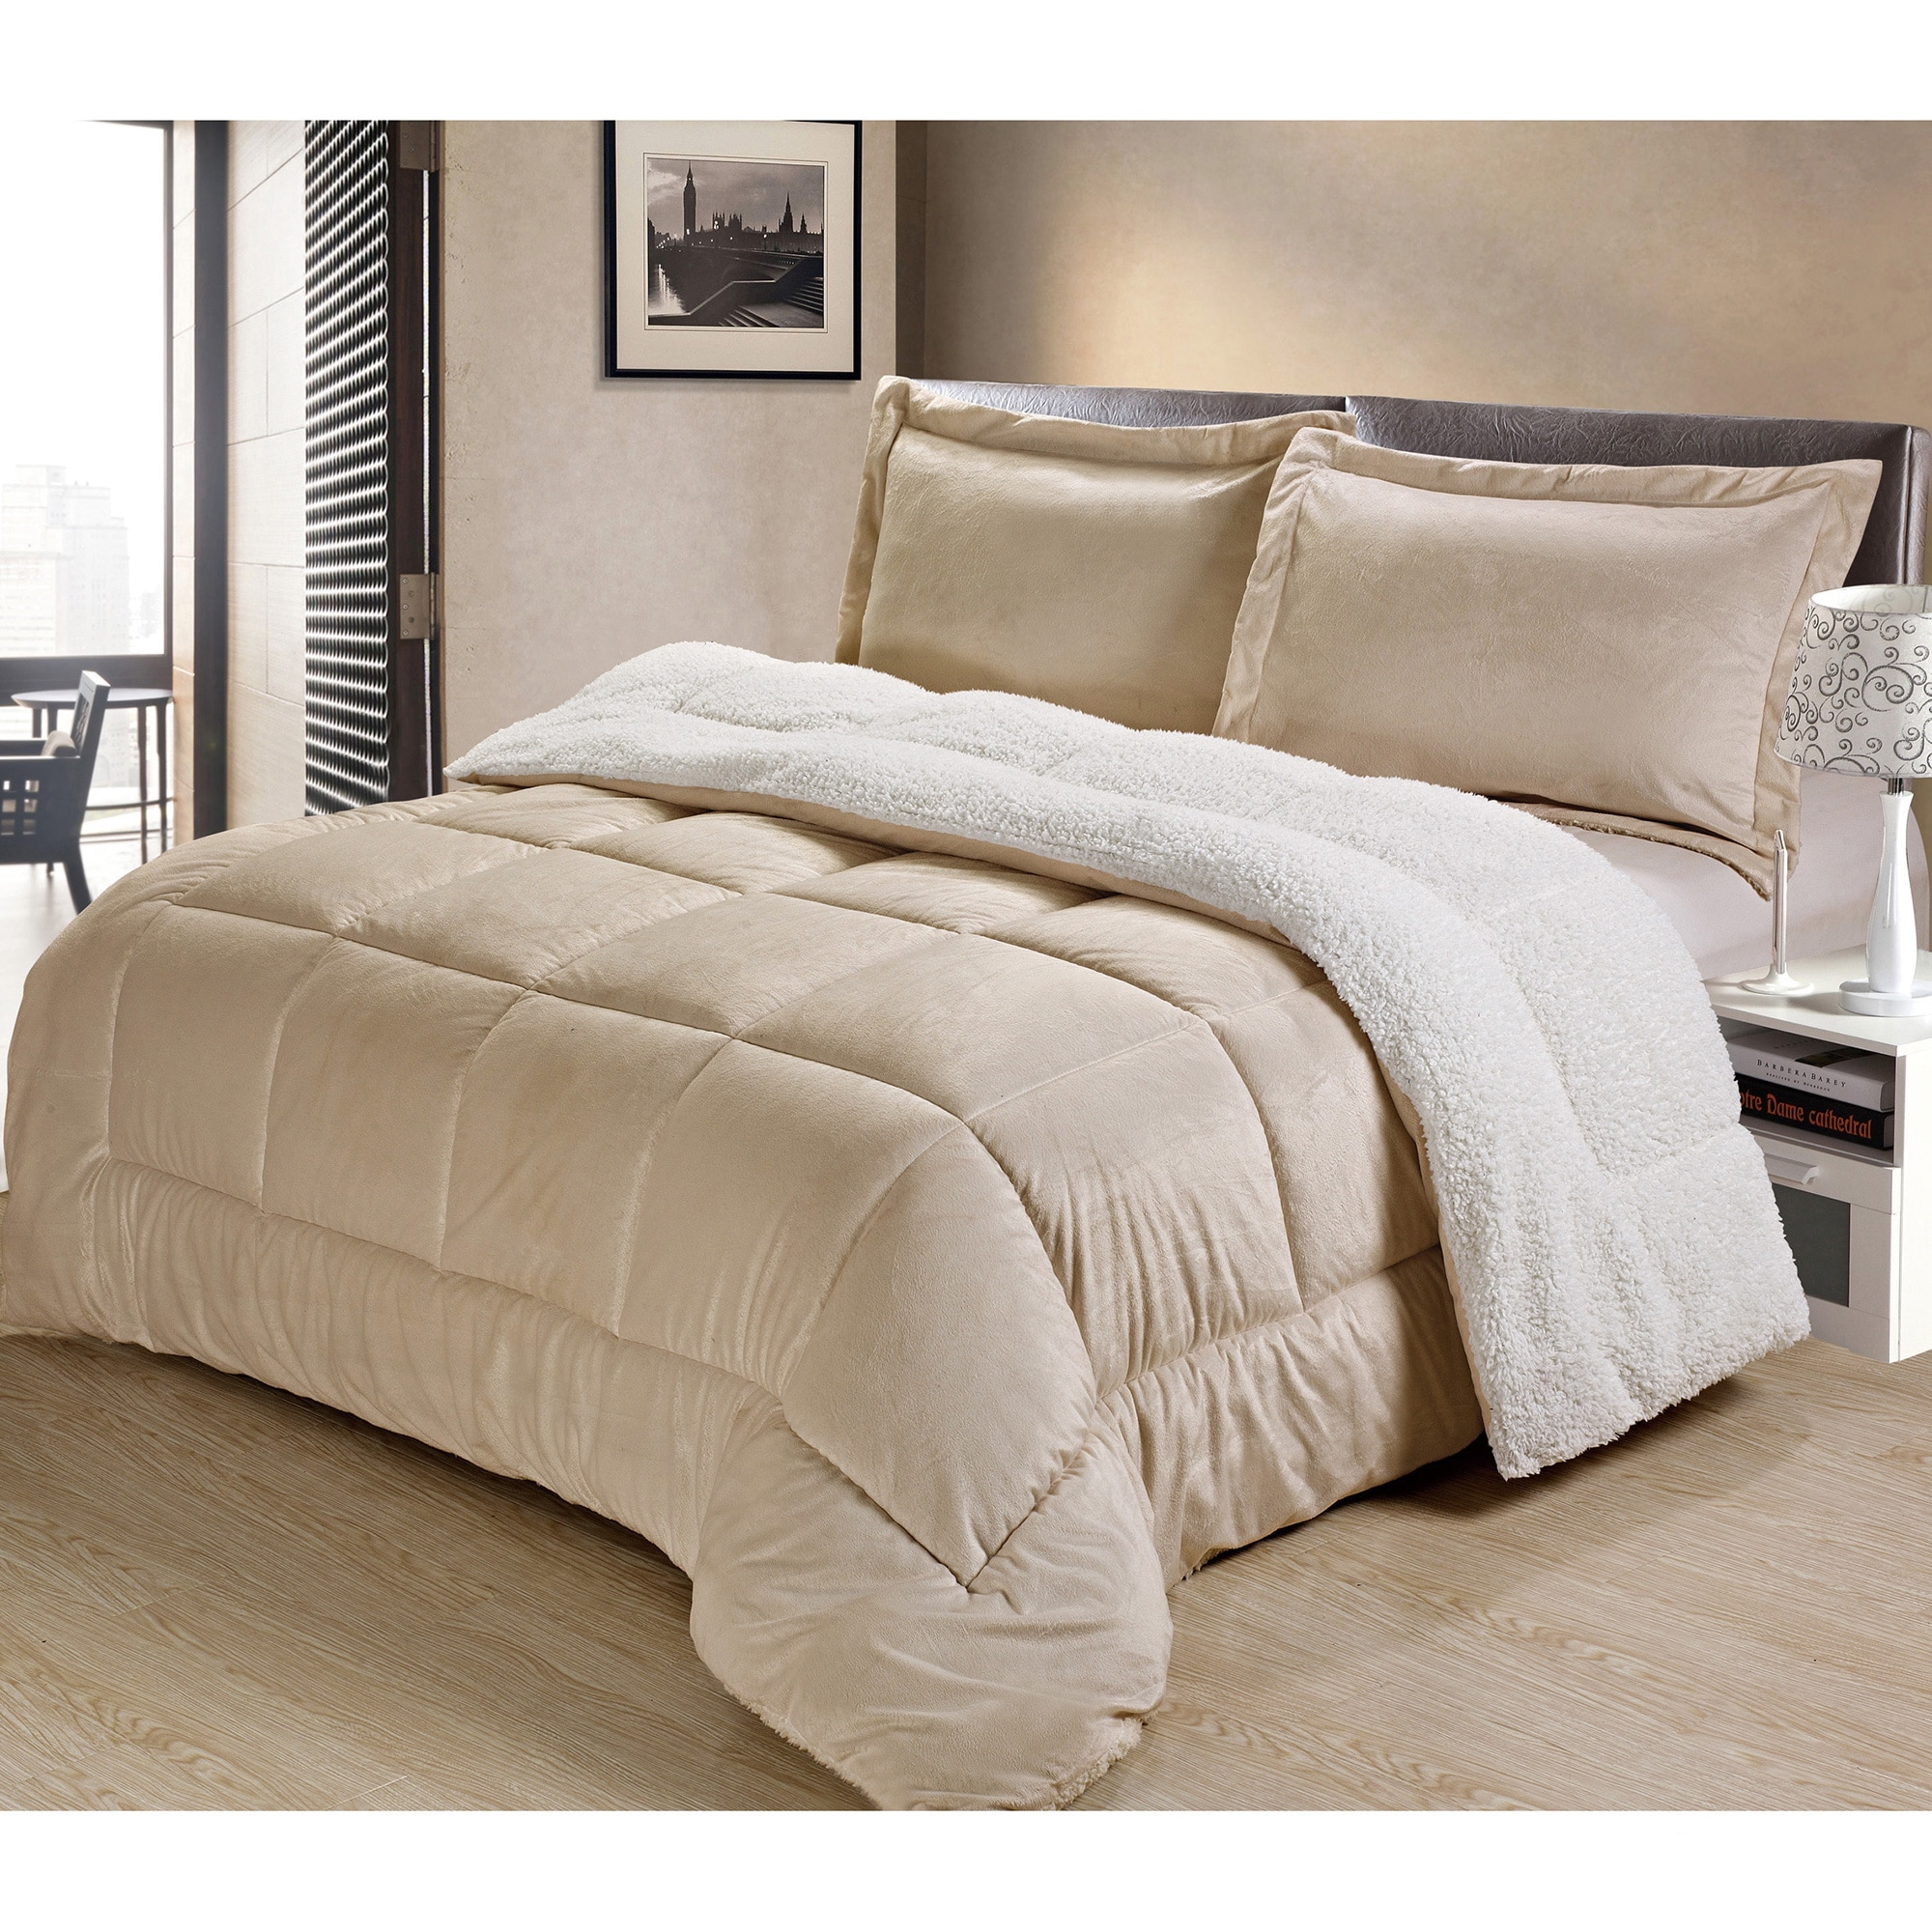 home bed comforter reviews piece suede wayfair pdx highland set micro chic bath